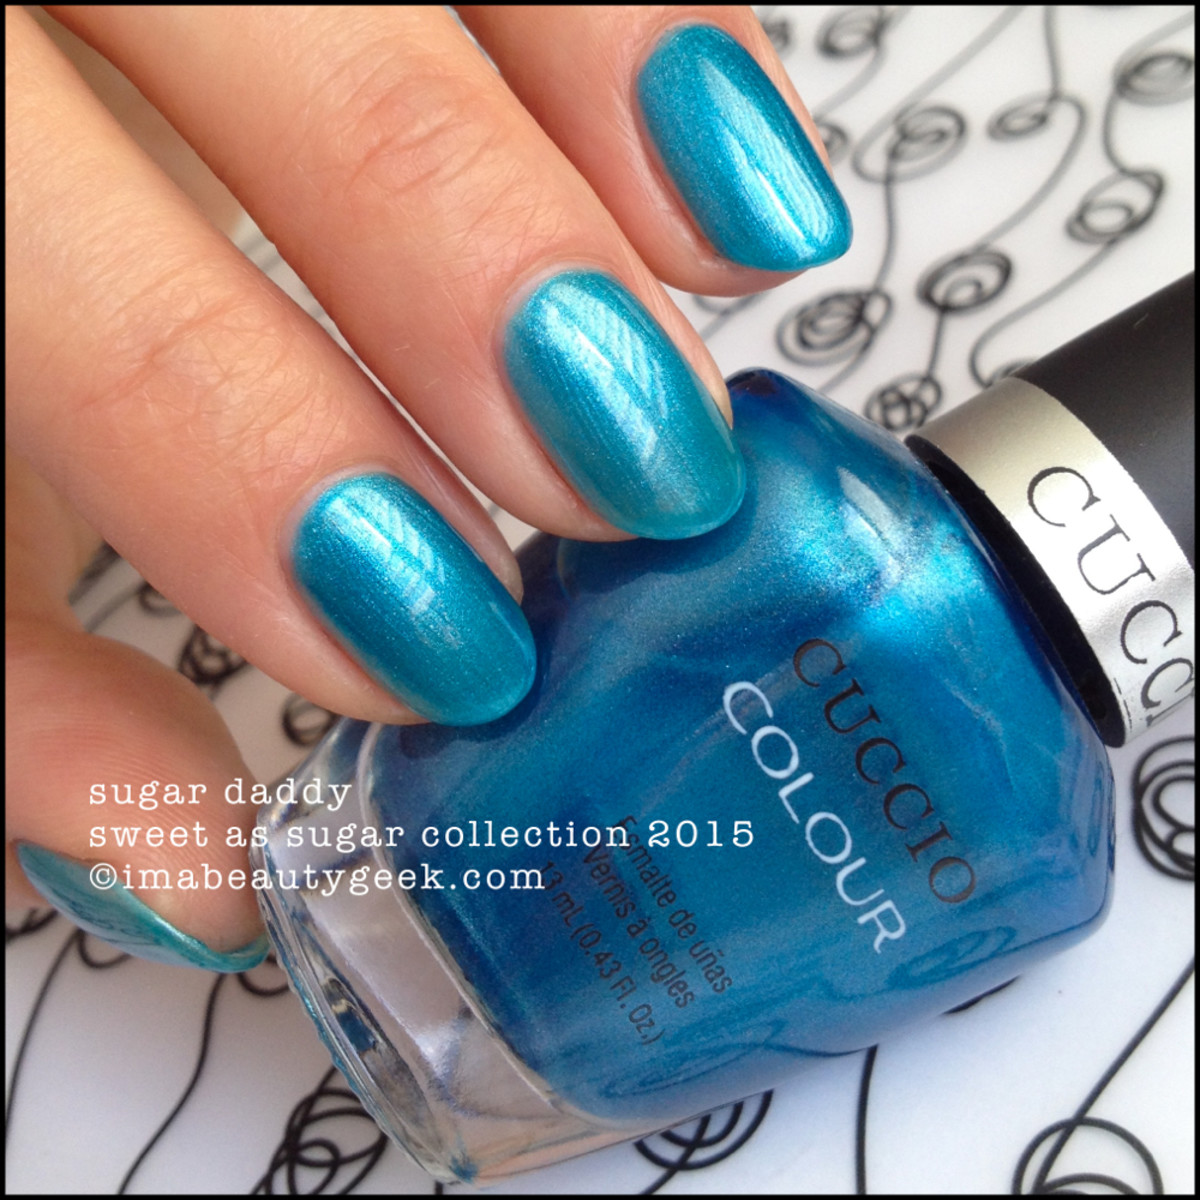 Cuccio Colour Nail Polish Sugar Daddy Sweet as Sugar Collection 2015